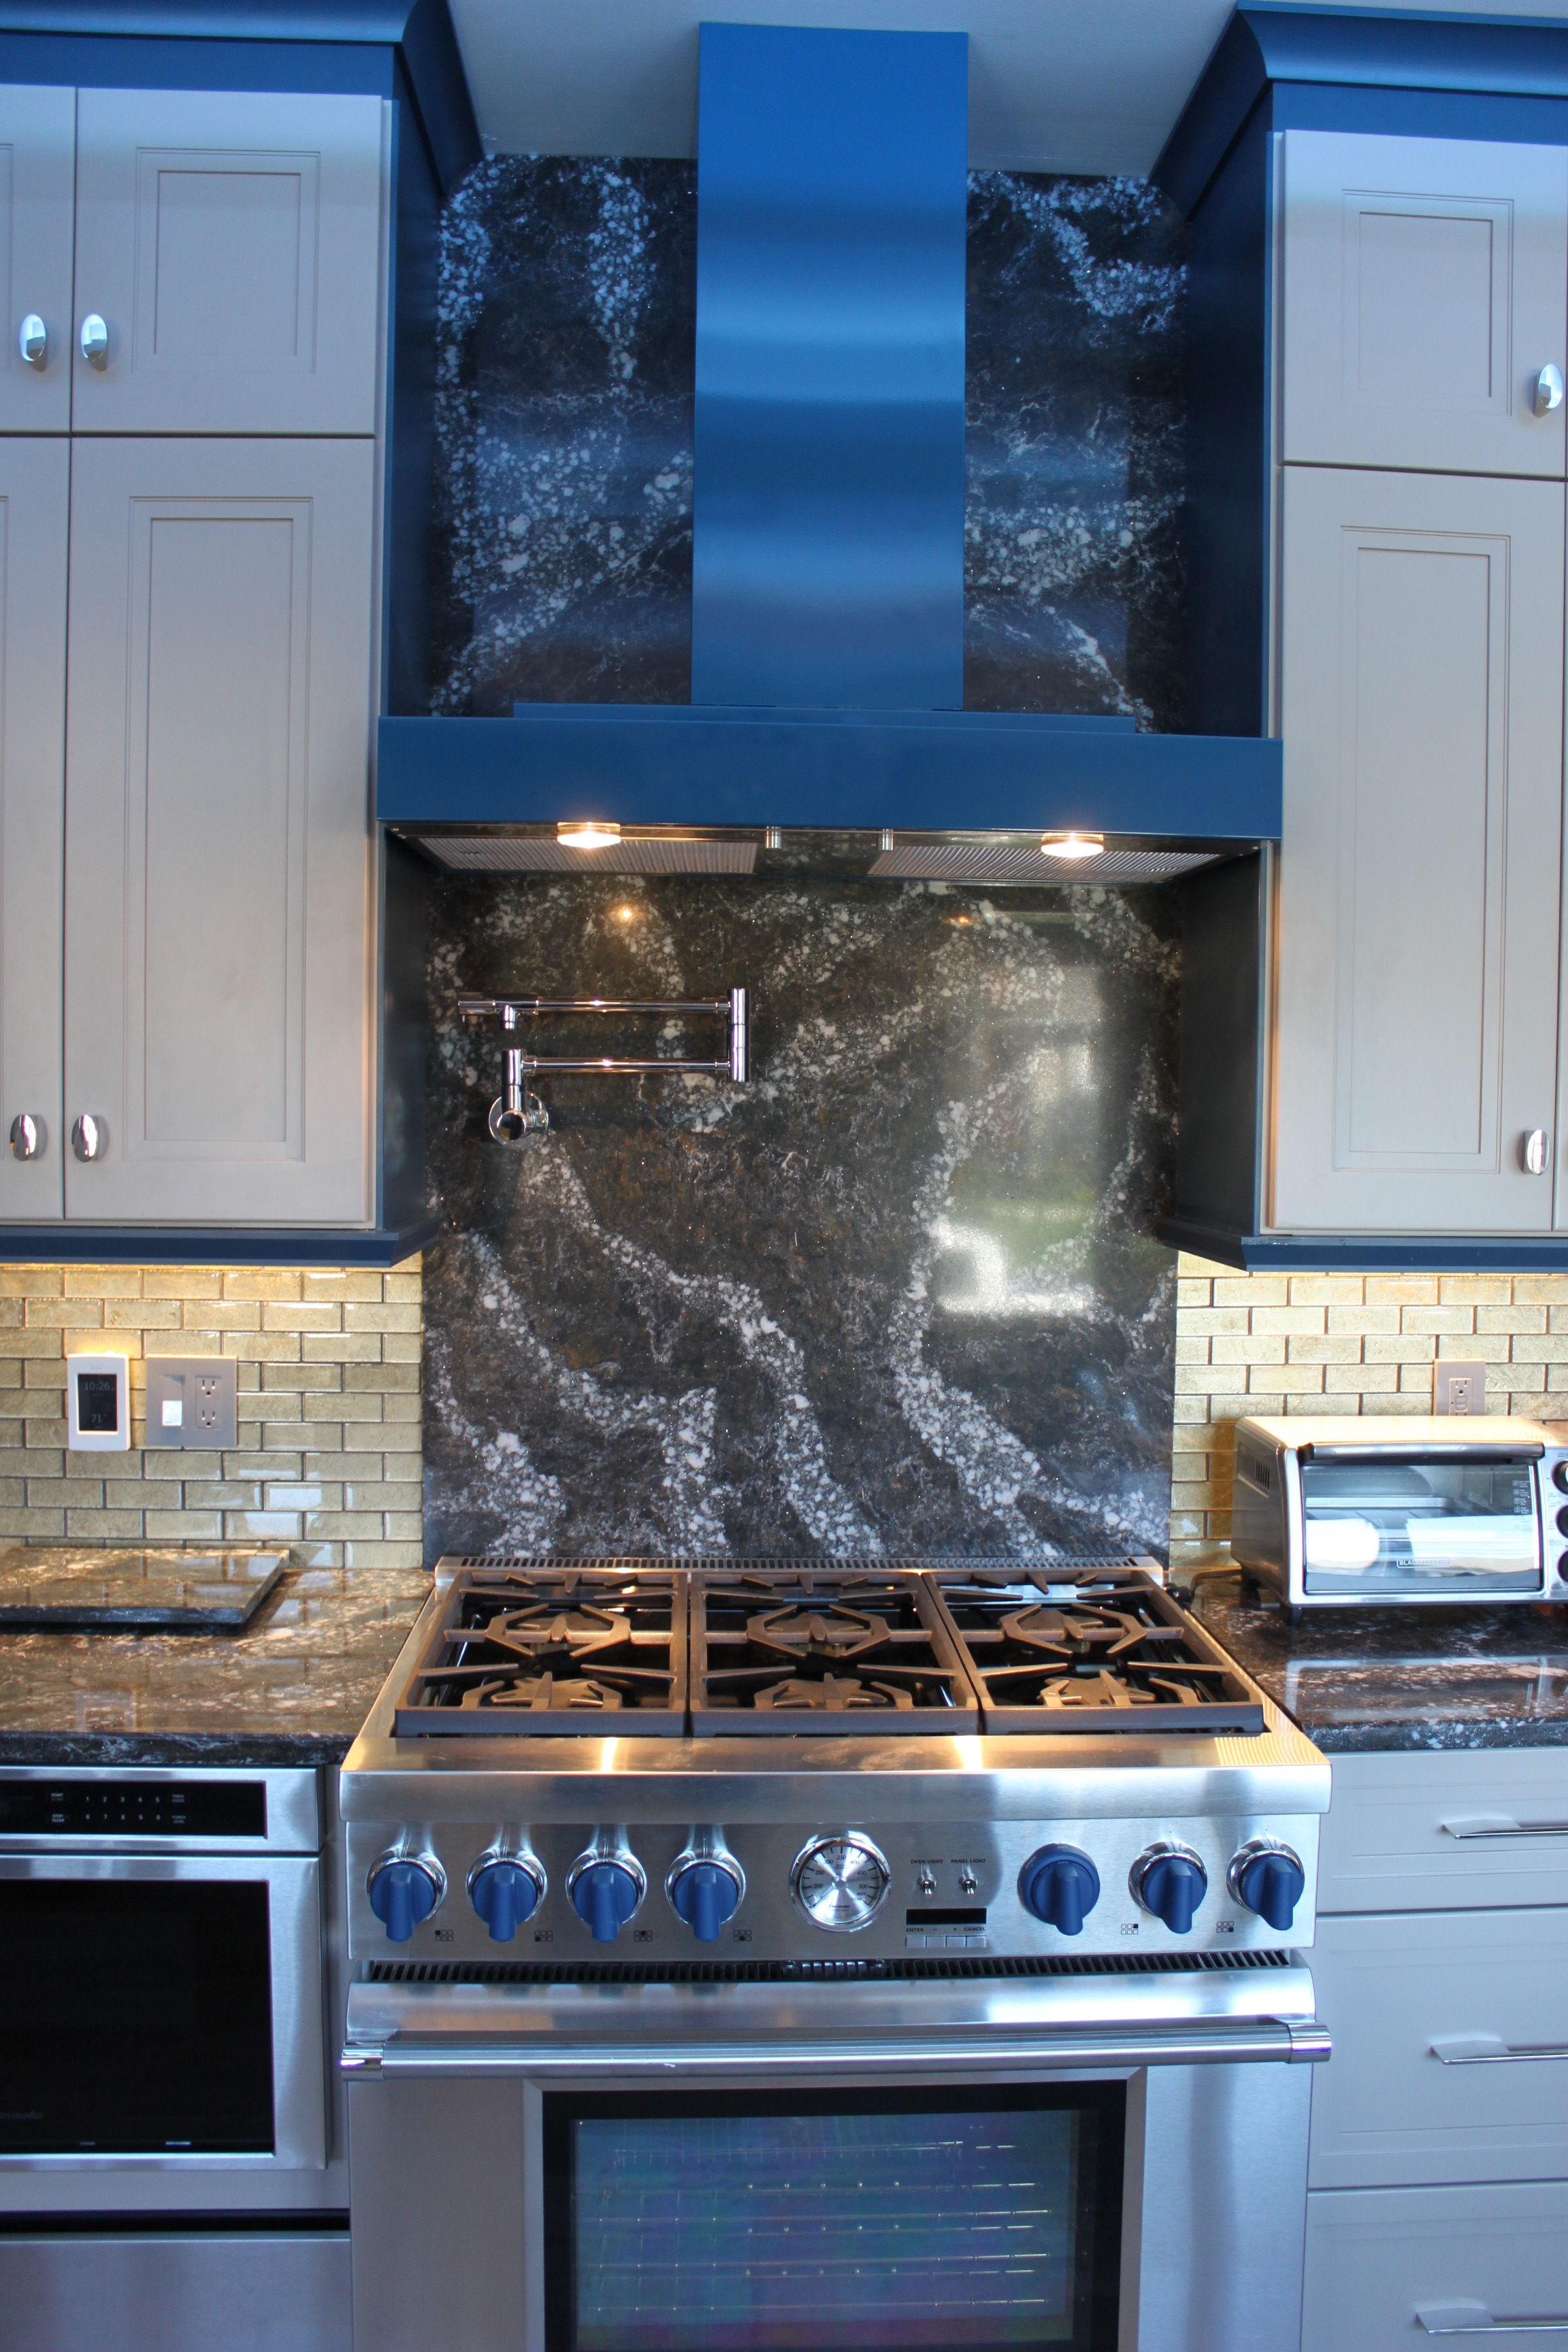 Black Recycled Glass Countertops Cambria Ellesmere Quartz Countertop And Range Backsplash